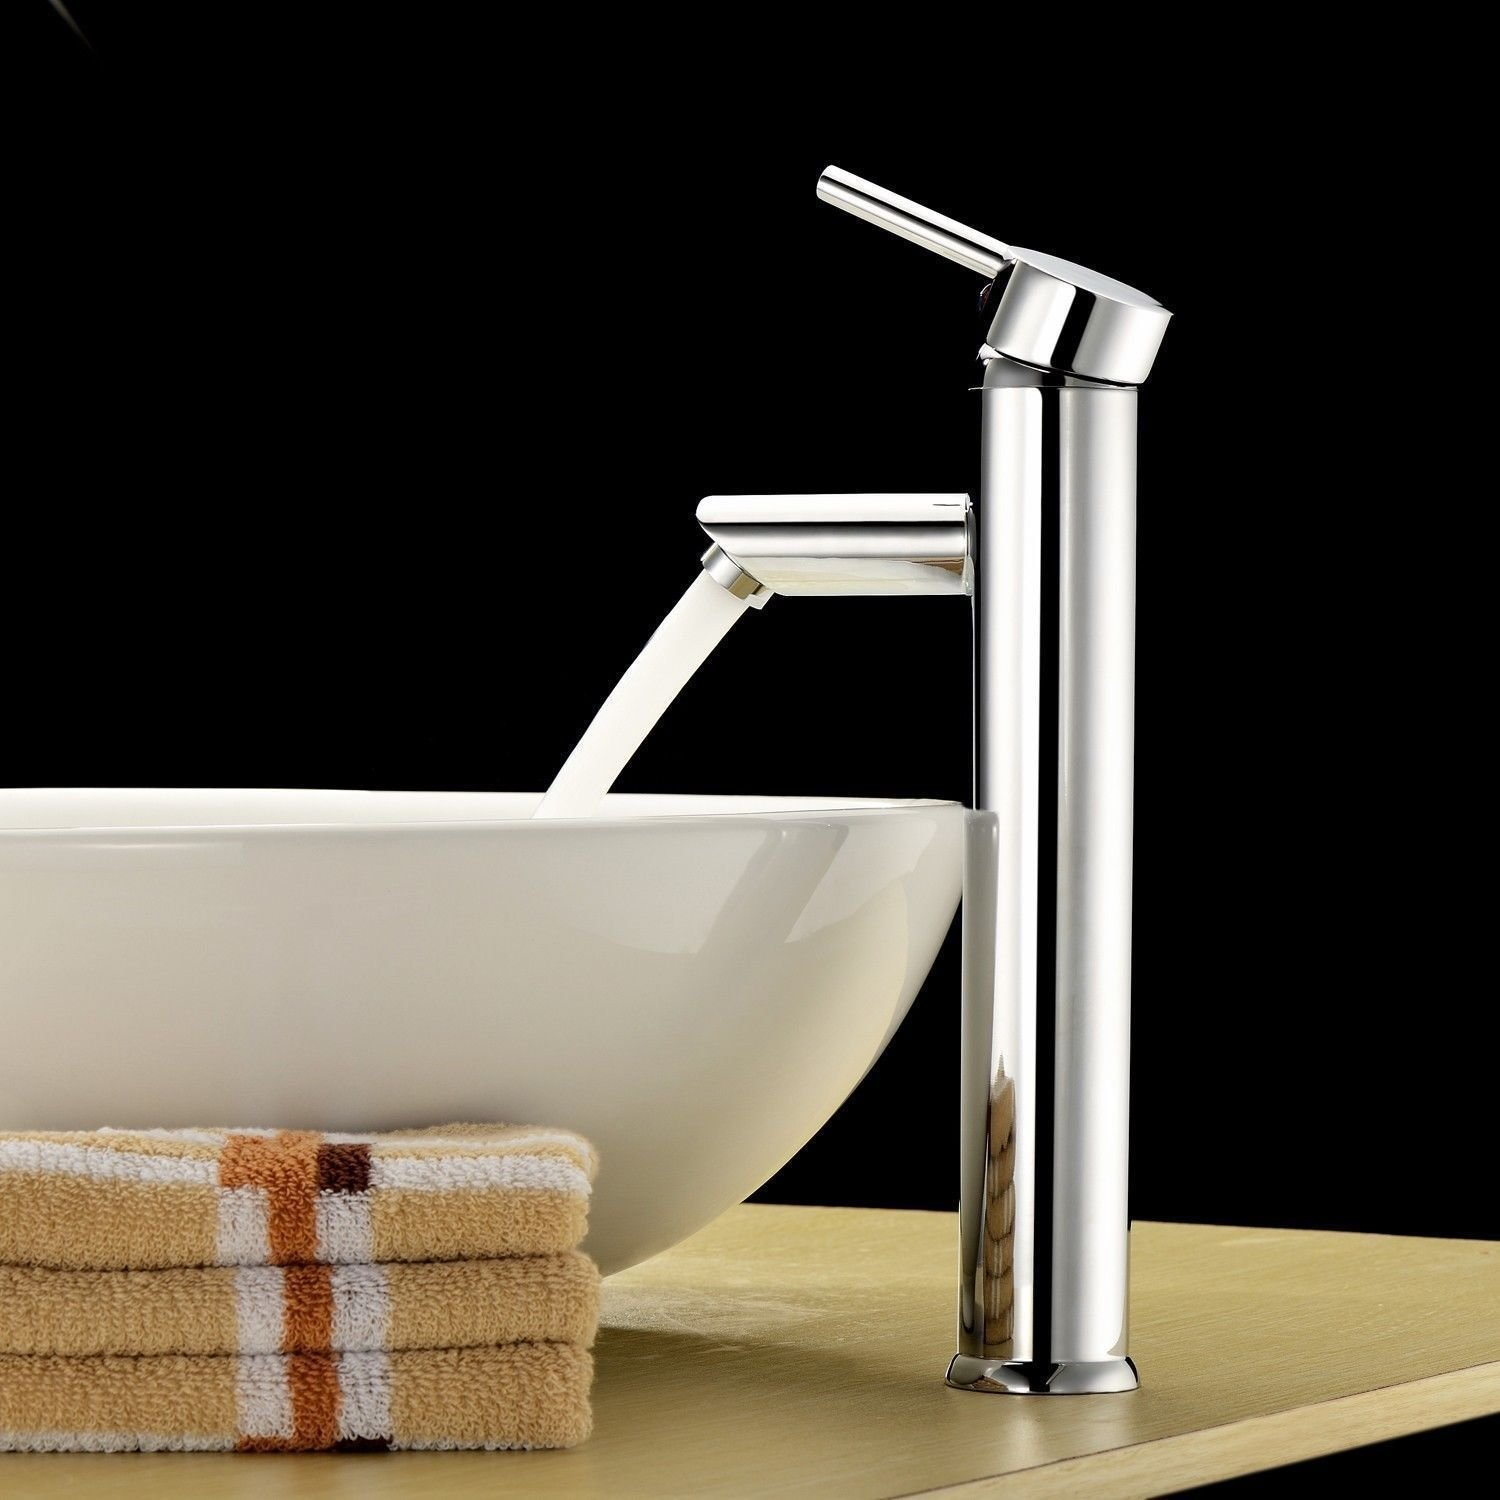 Amazon com  Single Handle Bathroom Sink Faucet Solid Brass Basin Mixer  Taps Chrome Finish  Home Improvement. Amazon com  Single Handle Bathroom Sink Faucet Solid Brass Basin